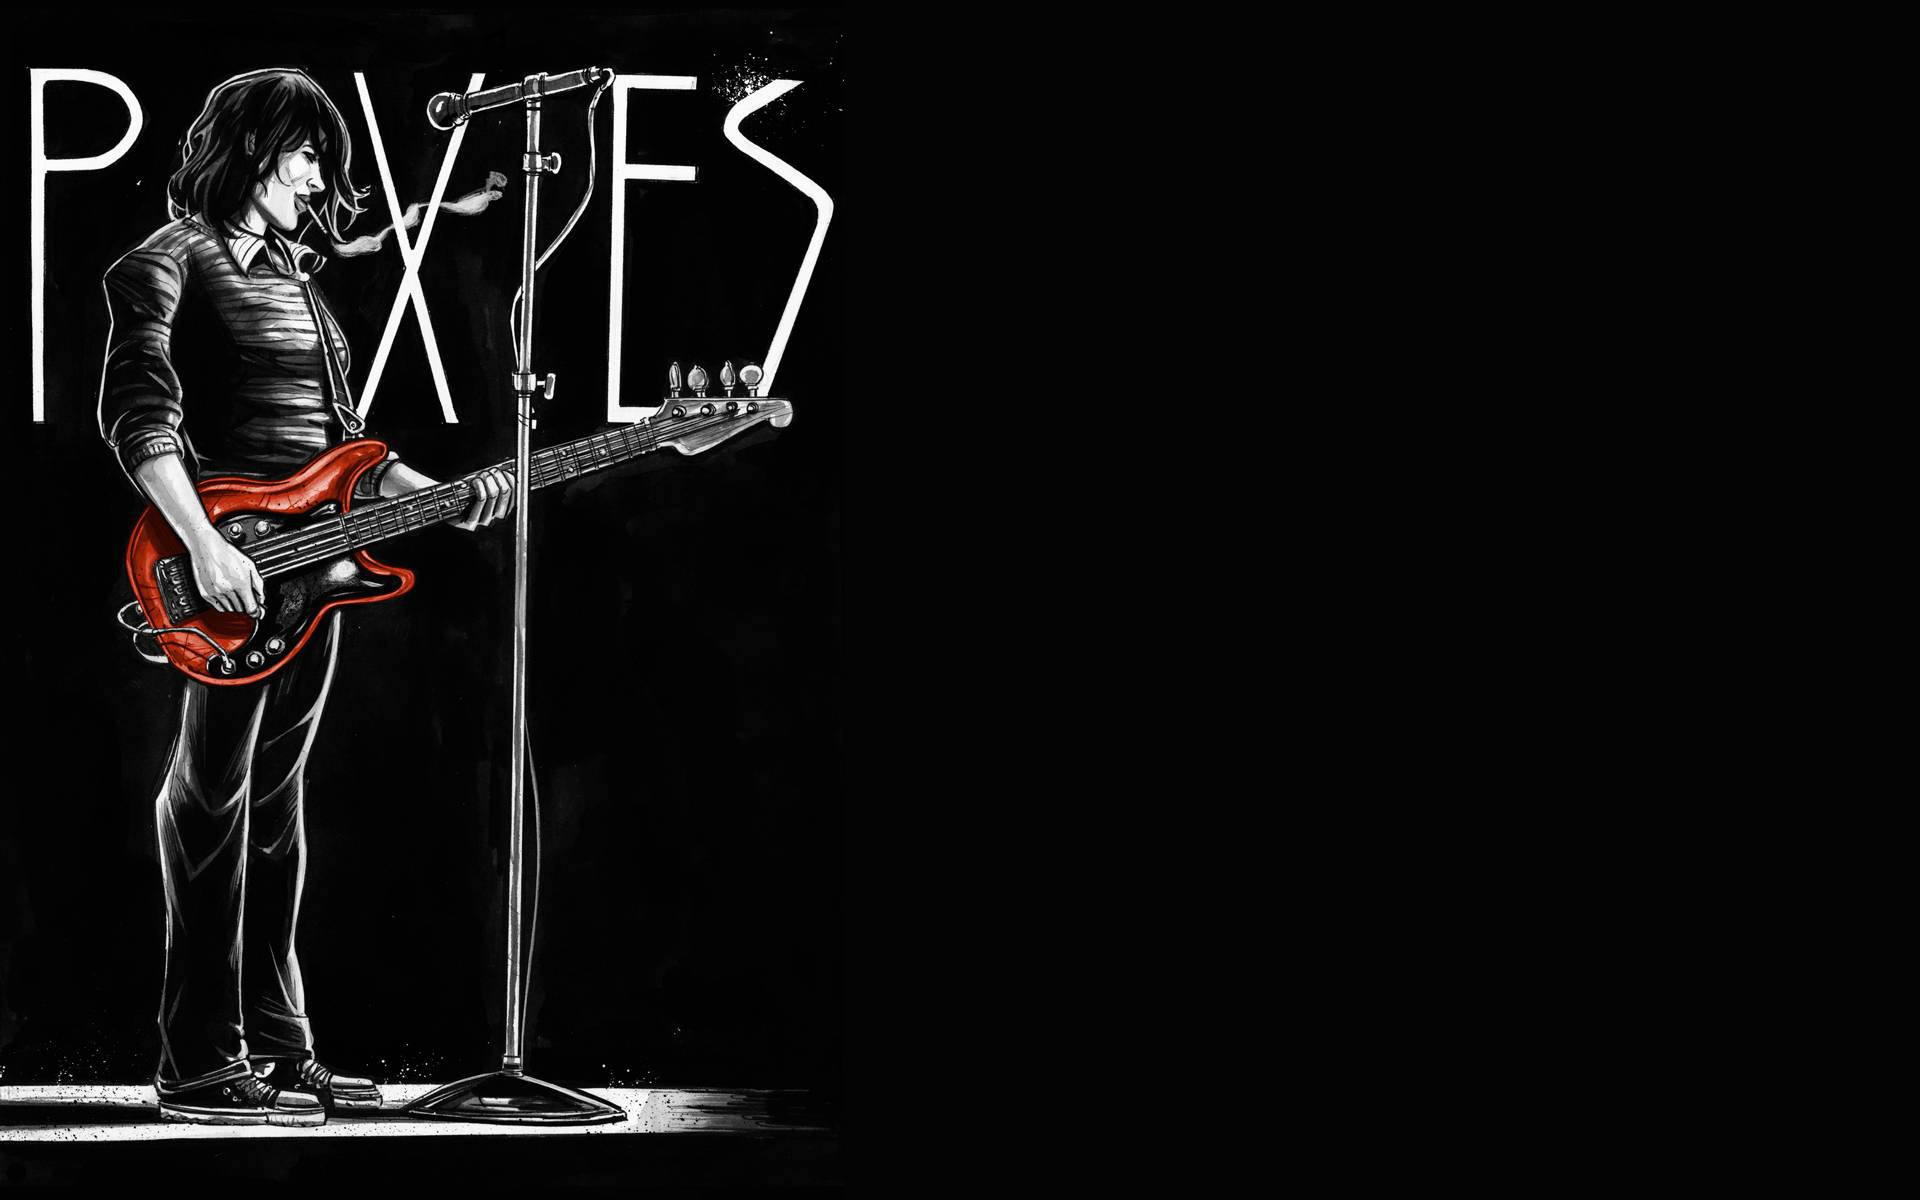 Pixies Wallpapers, Full HD Quality Pixies Photos #5015078